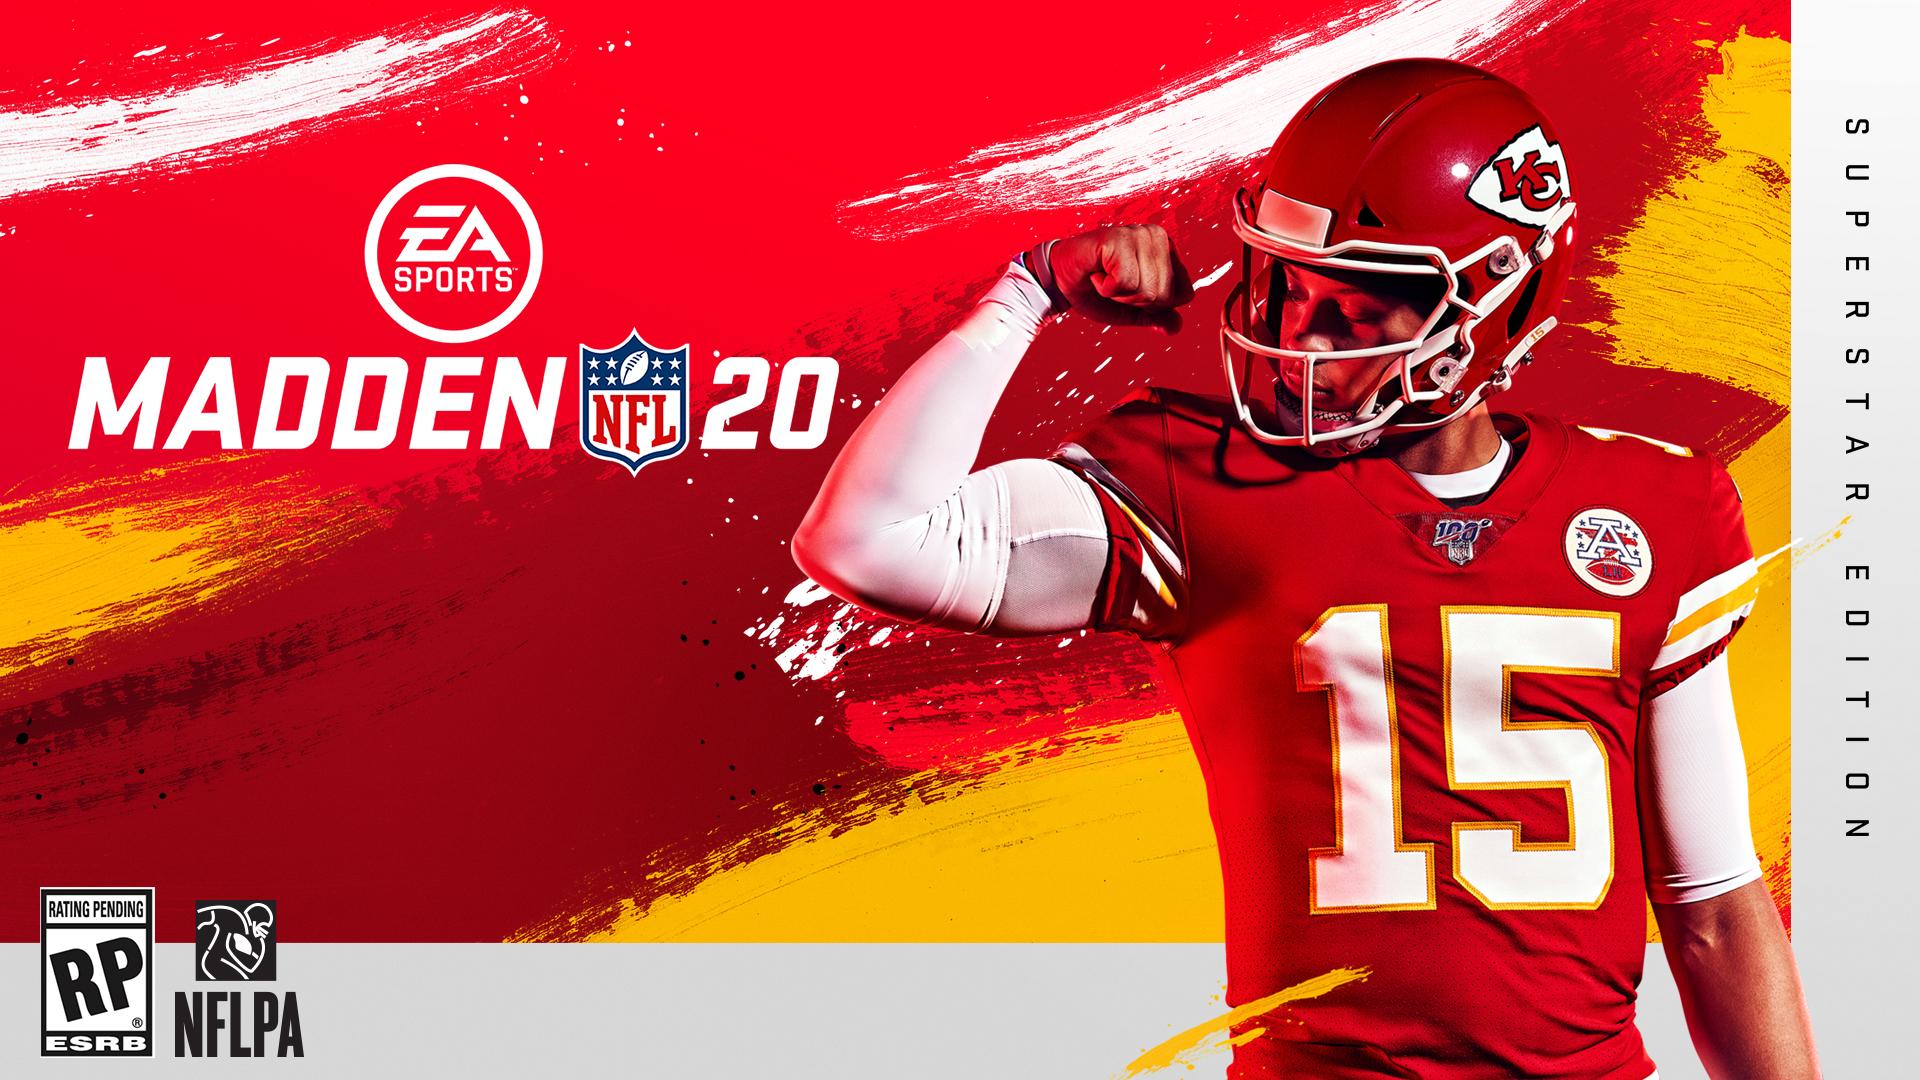 Patrick Mahomes officially broke the Madden cover curse